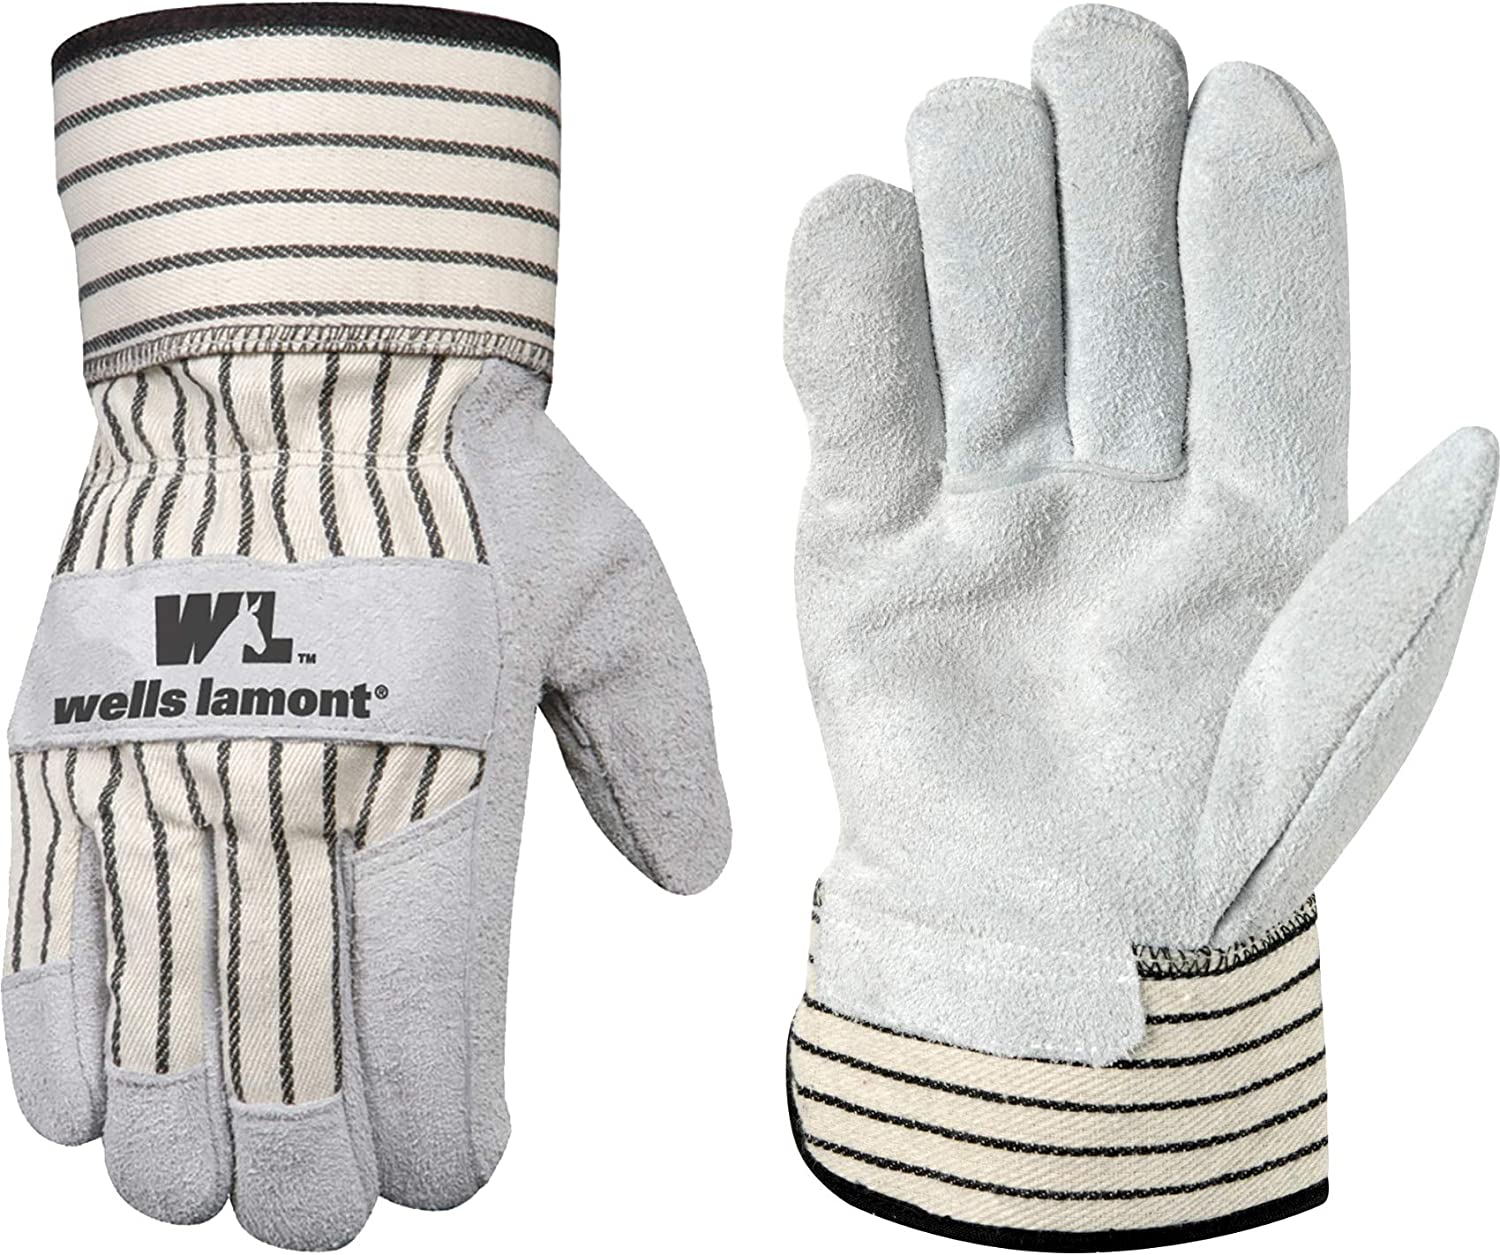 Brand Cheap Sale Venue discount Wells Lamont Leather Work Gloves with Suede E Safety Palm Cuff